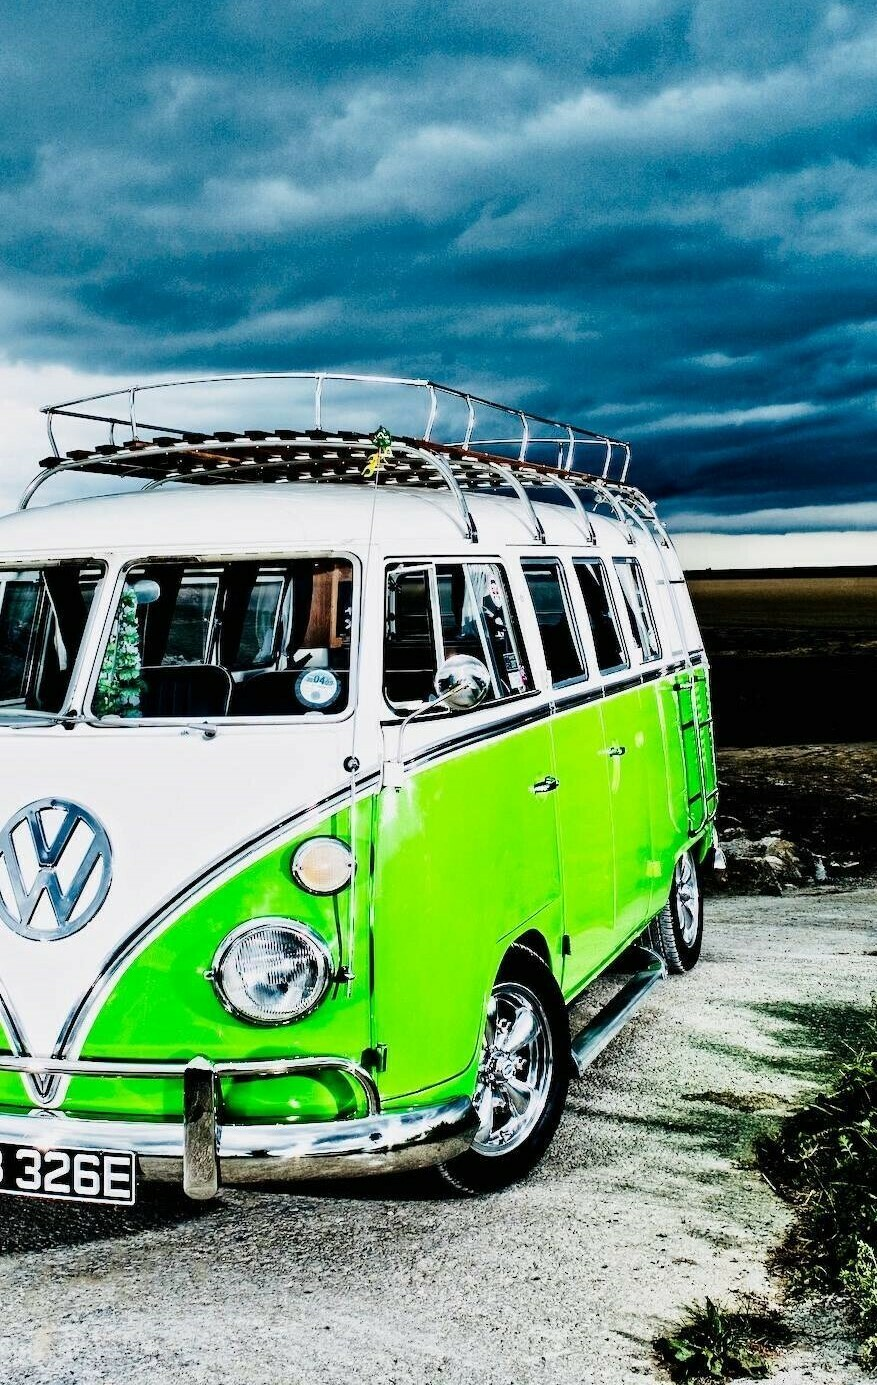 VW Van - Full Drill Diamond Painting - Specially ordered for you. Delivery is approximately 4 - 6 weeks.